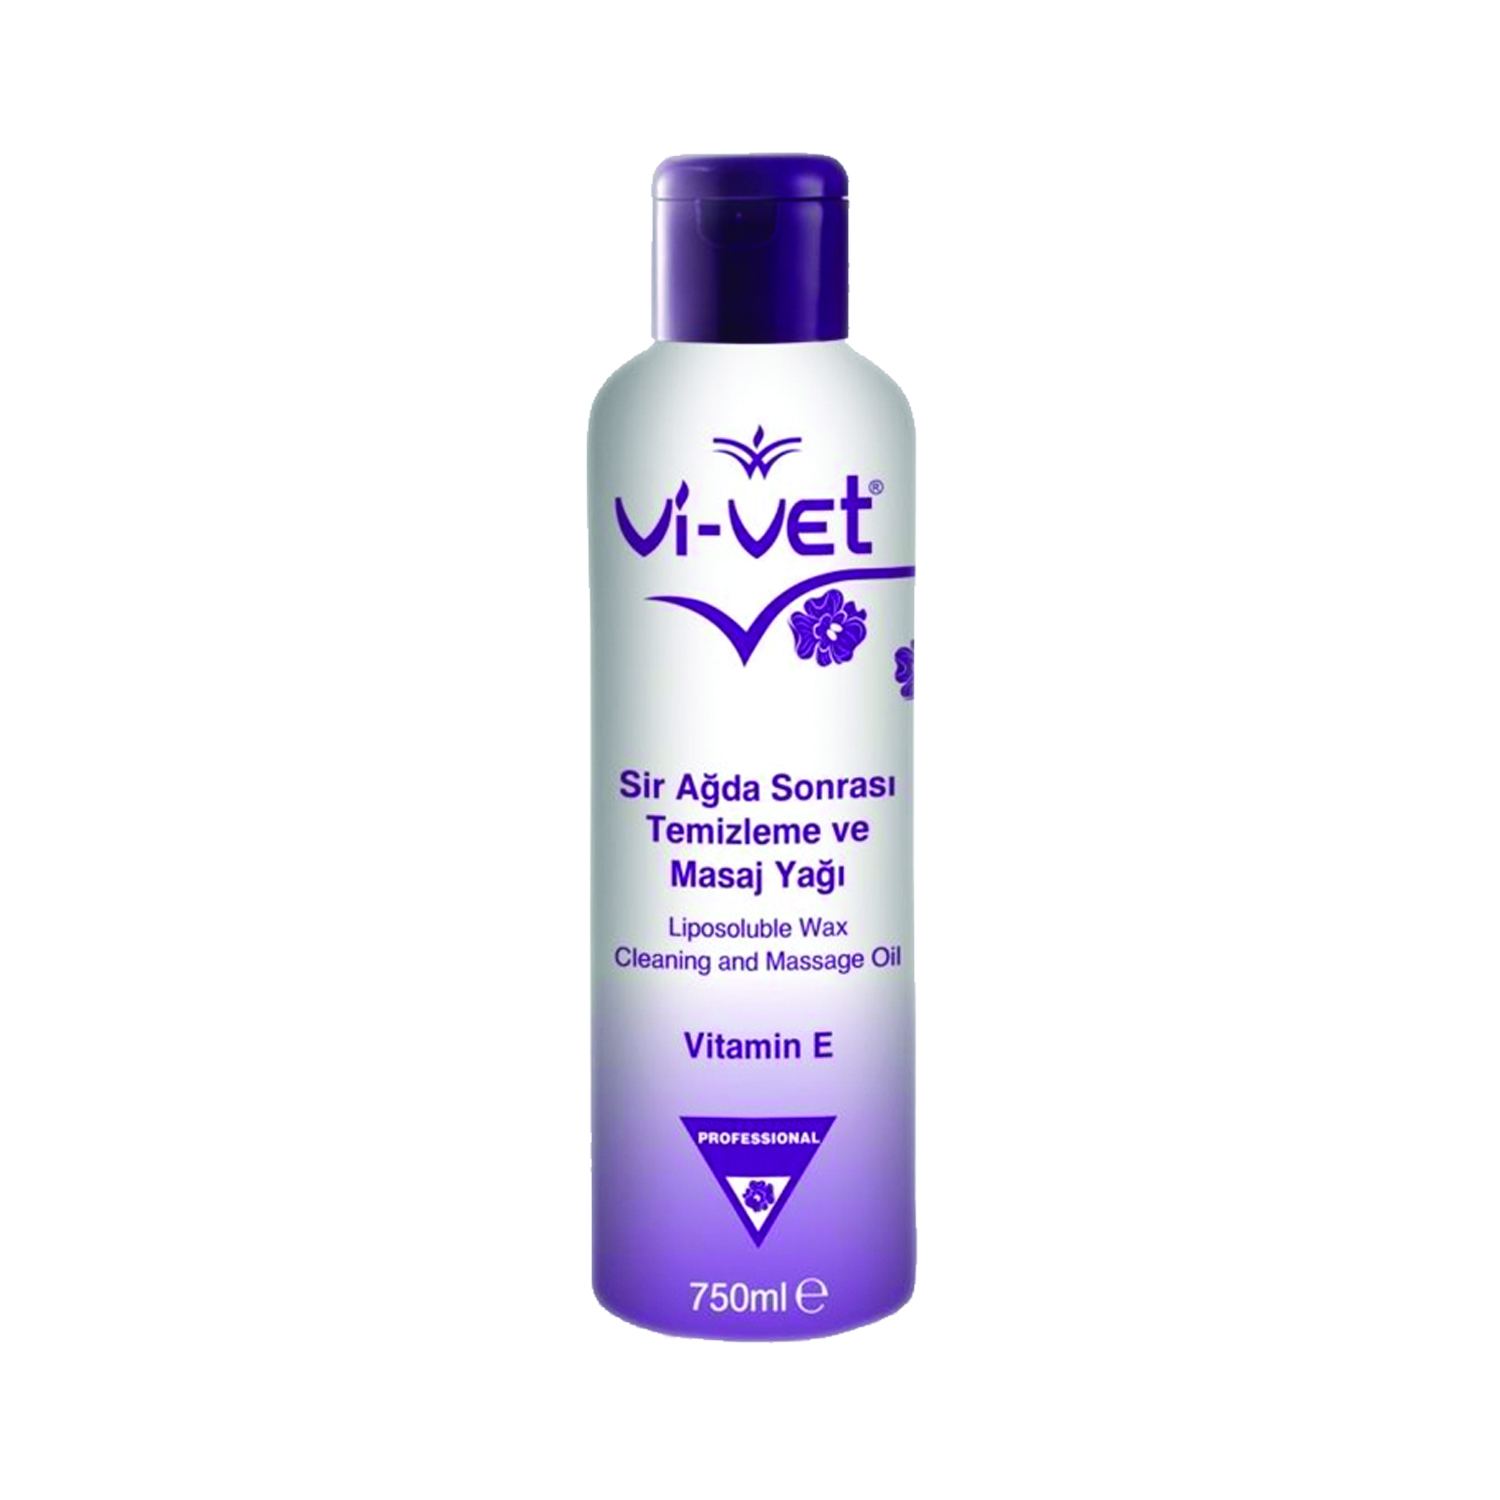 Vi-vet Post Depilation Cleaning Oil 750ml